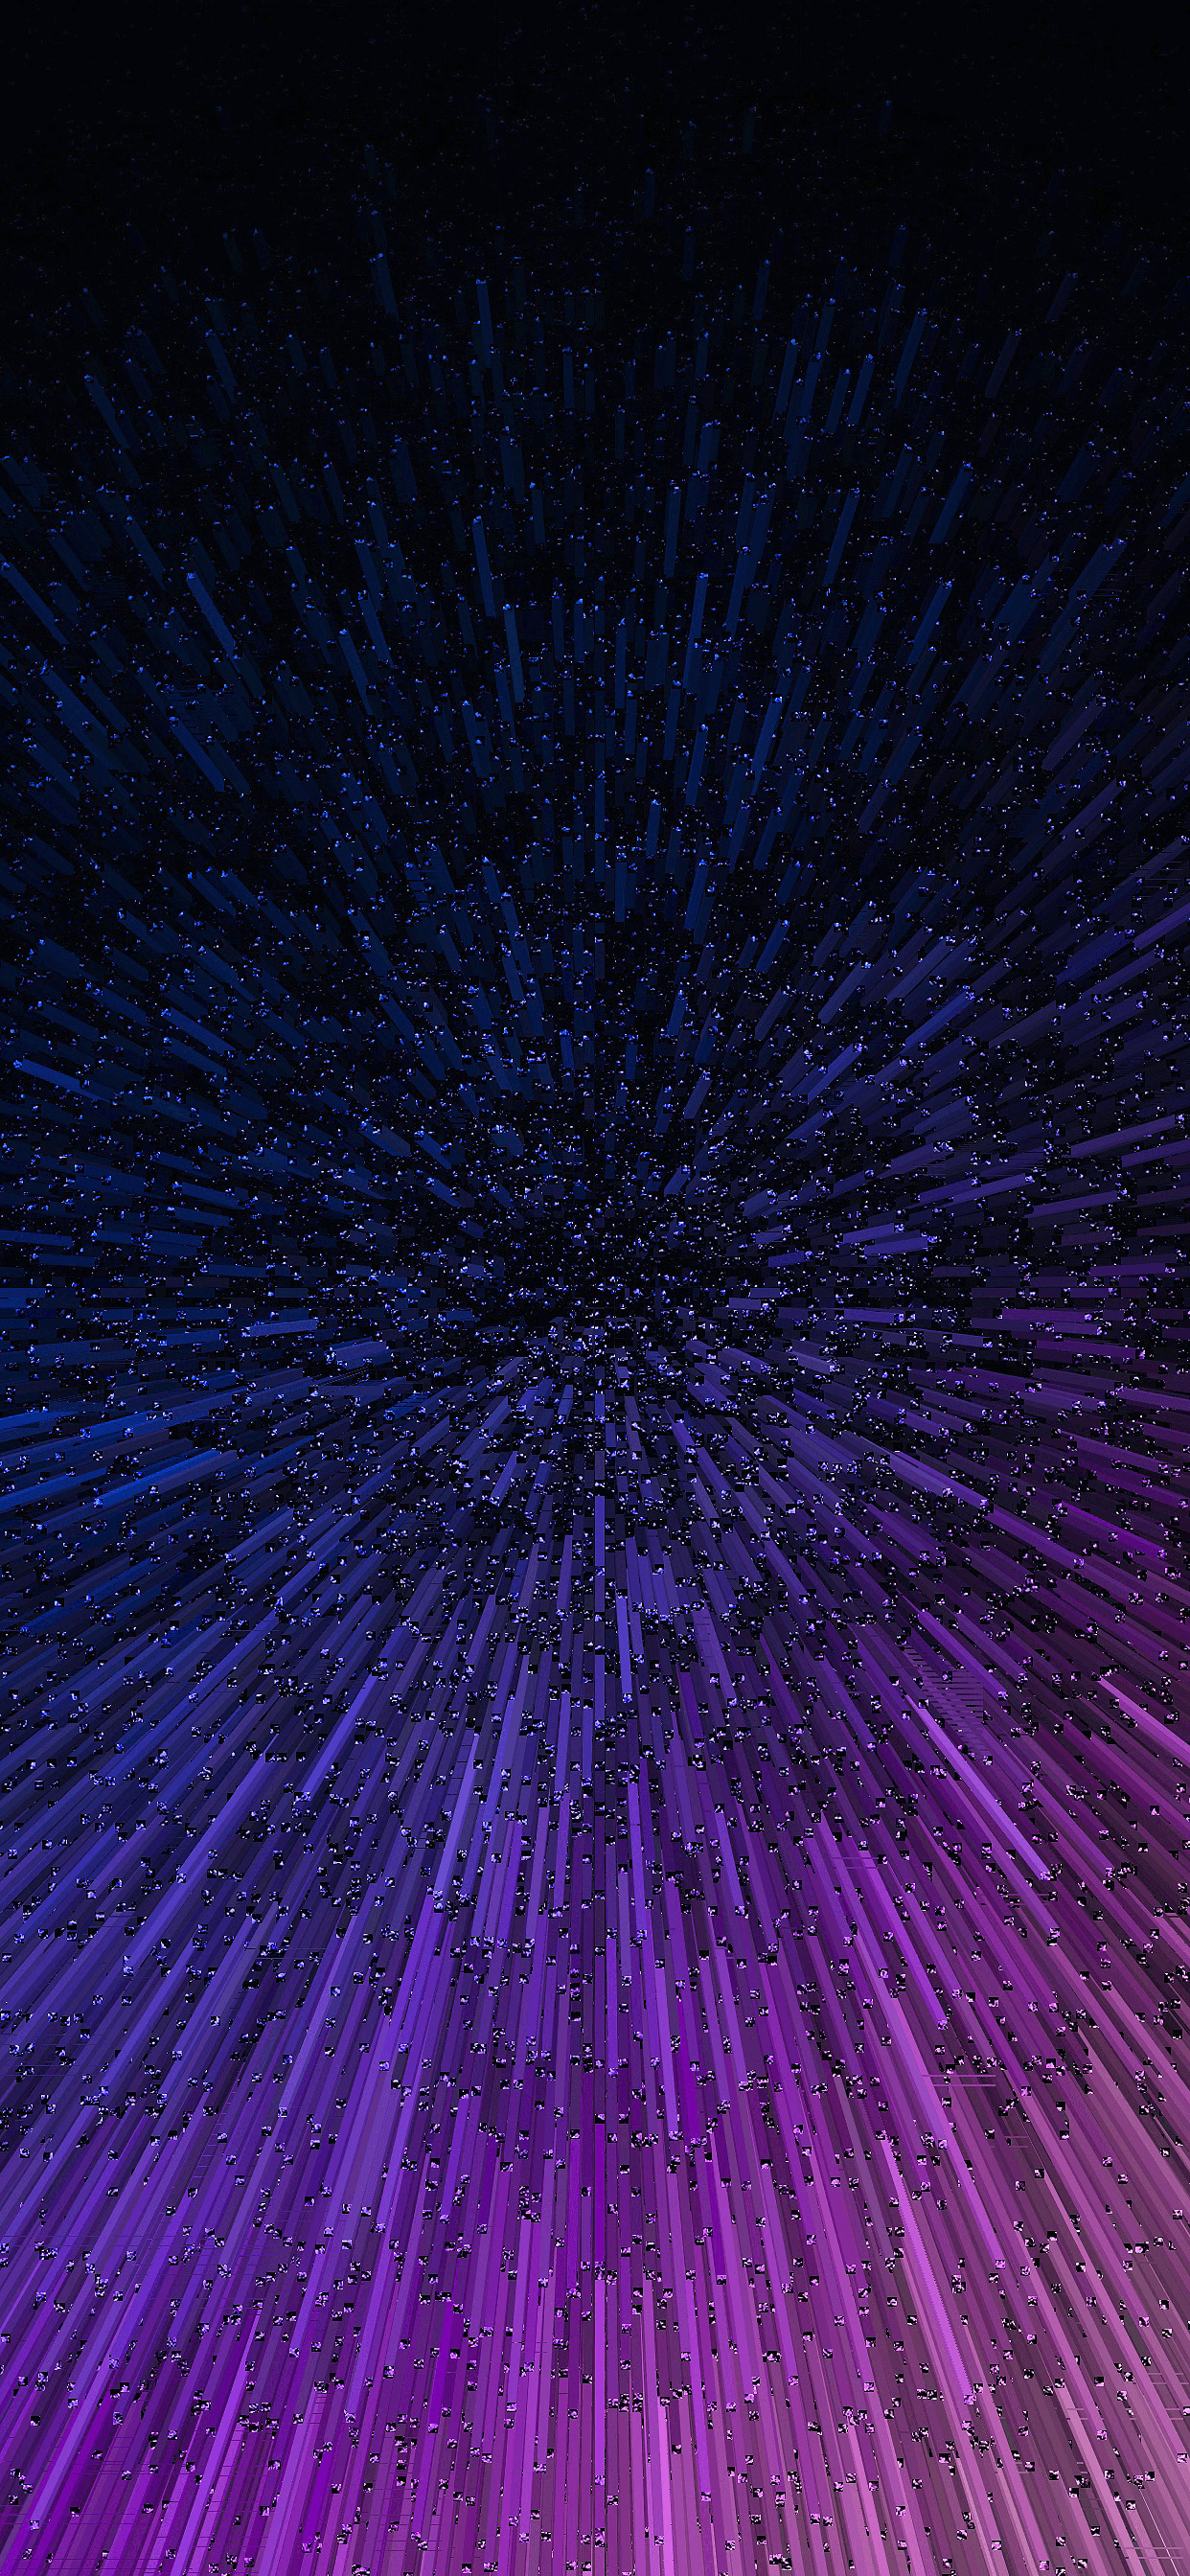 Meteorite Explosion for for iPhone XS MAX Wallpaper